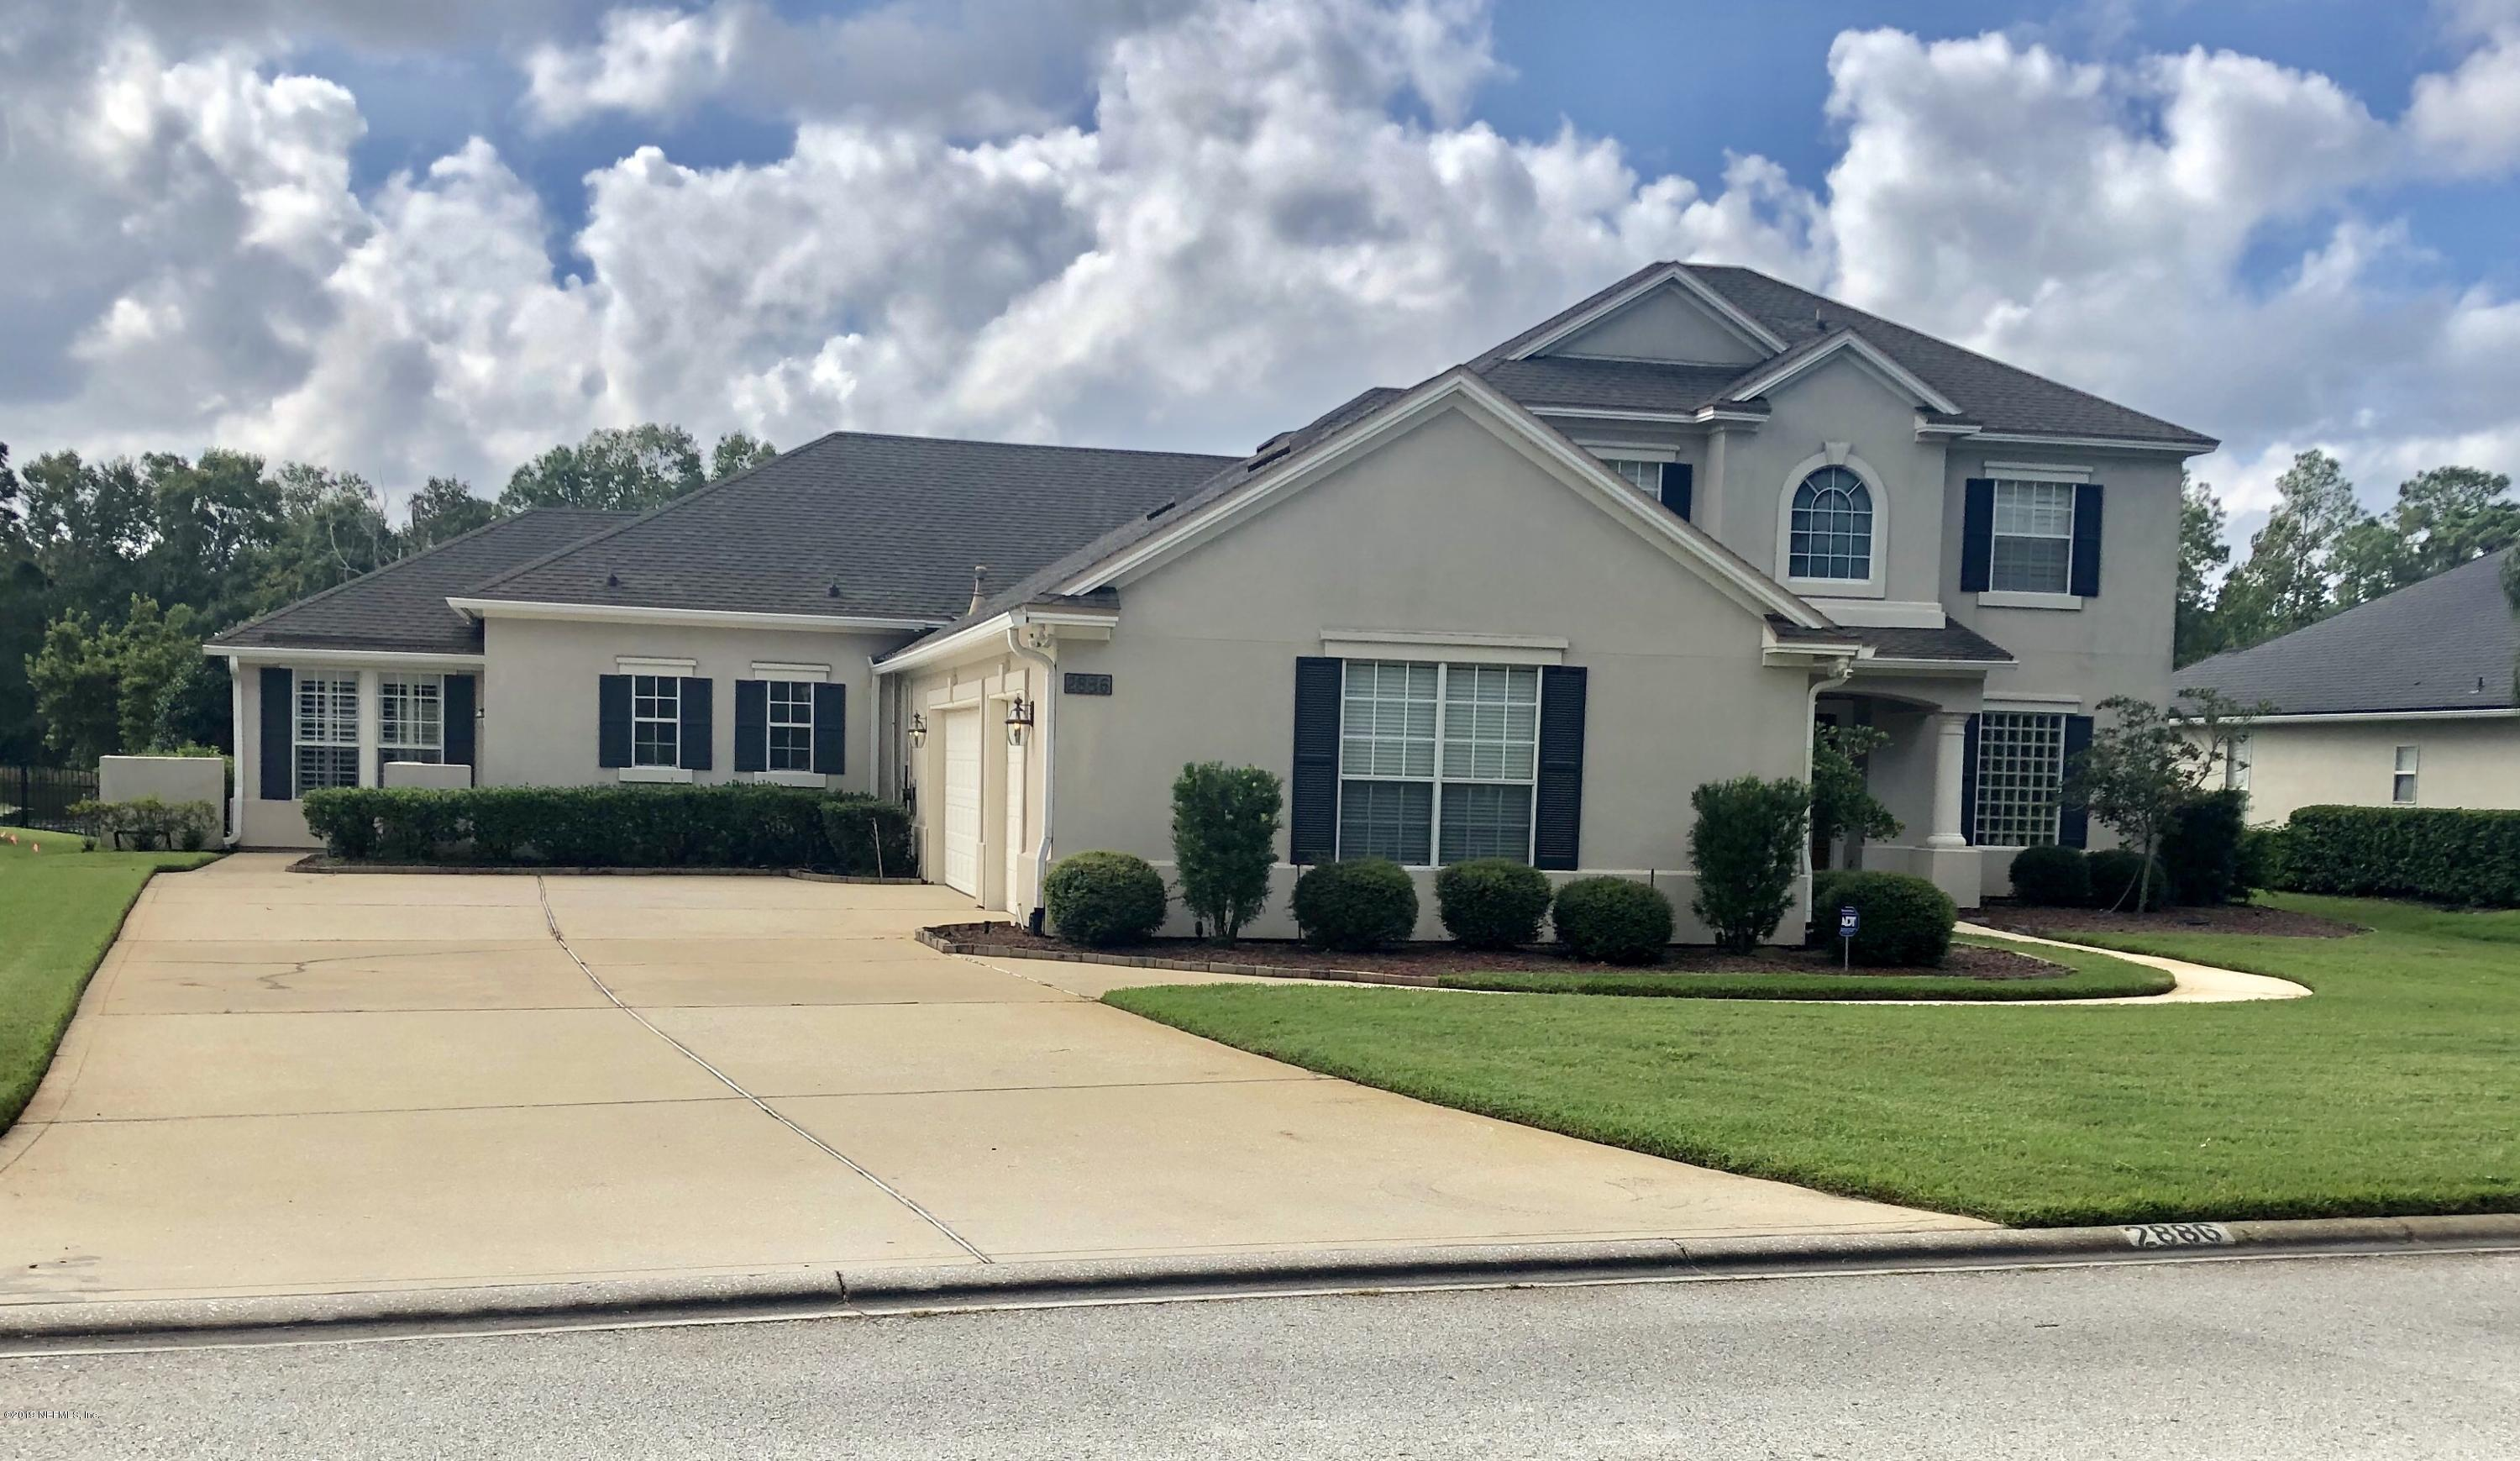 2886 COUNTRY CLUB- ORANGE PARK- FLORIDA 32073, 5 Bedrooms Bedrooms, ,3 BathroomsBathrooms,Residential - single family,For sale,COUNTRY CLUB,1015471